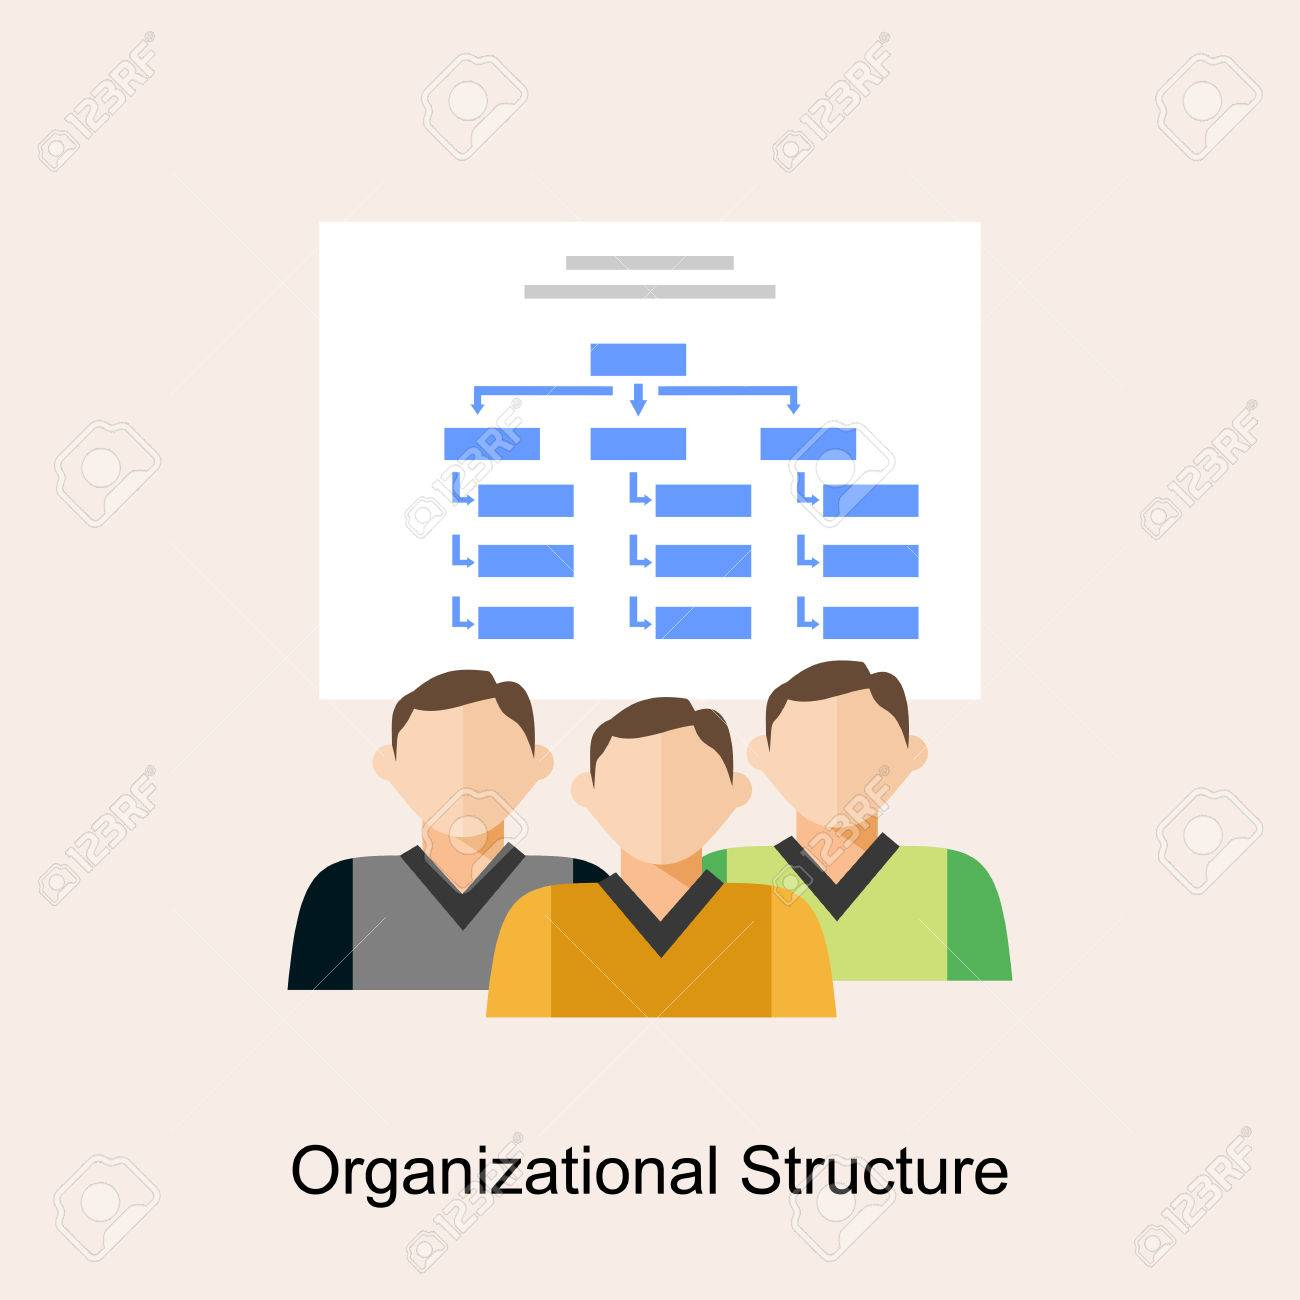 Organizational Structure Organization Diagram Flat Design Royalty Free Cliparts Vectors And Stock Illustration Image 59777531